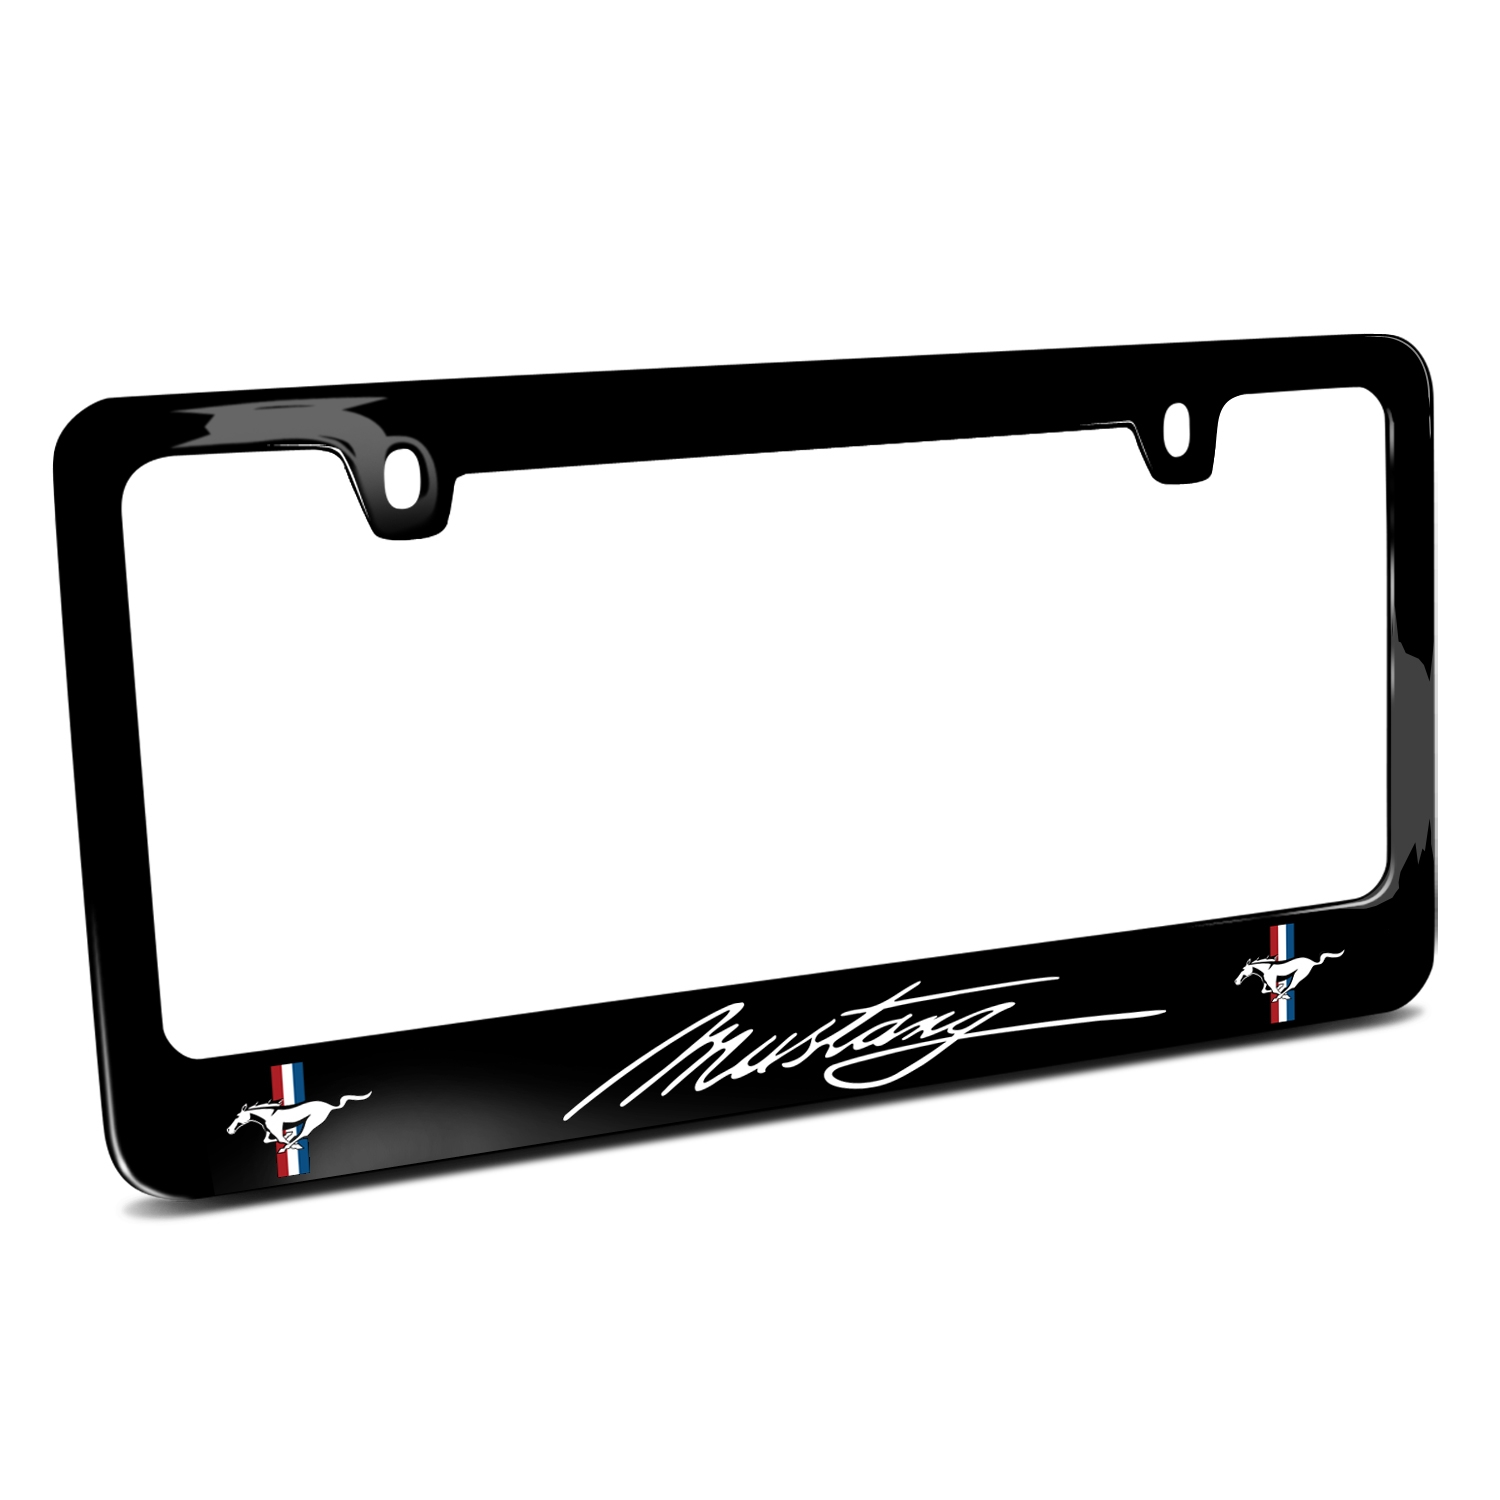 Ford Mustang Script Dual Logos Black Metal License Plate Frame